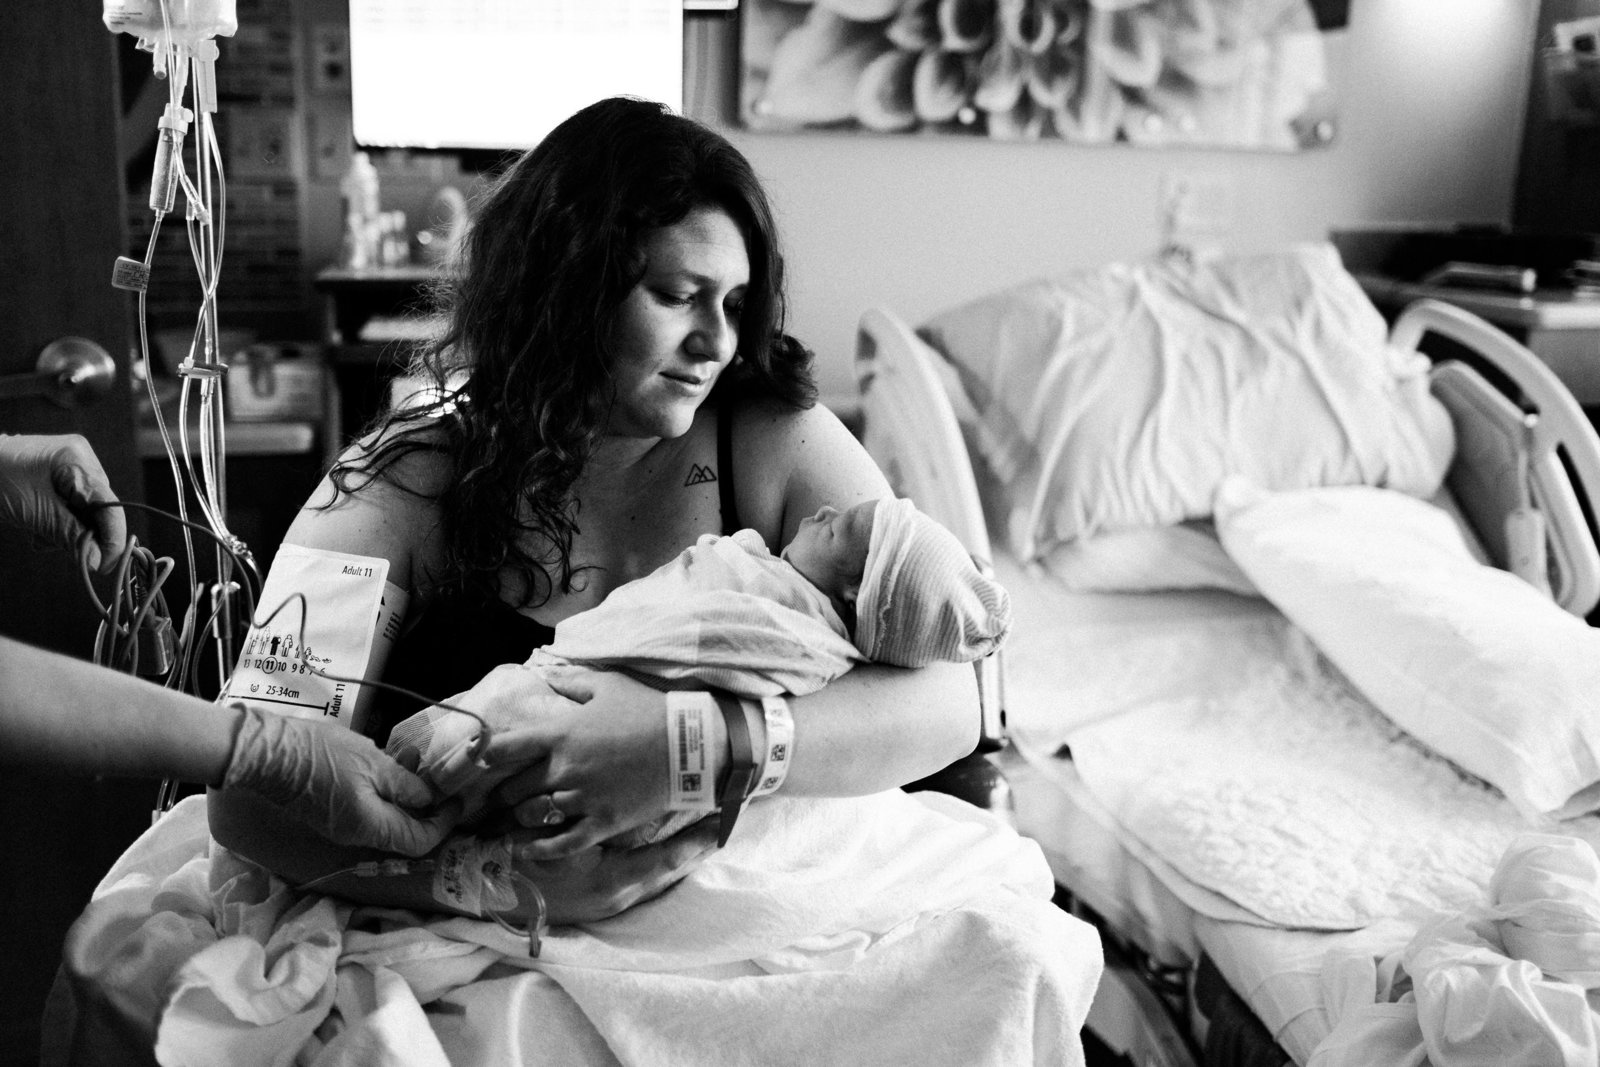 St Louis Birth Photographer- Kelly Laramore Photography 3326-2